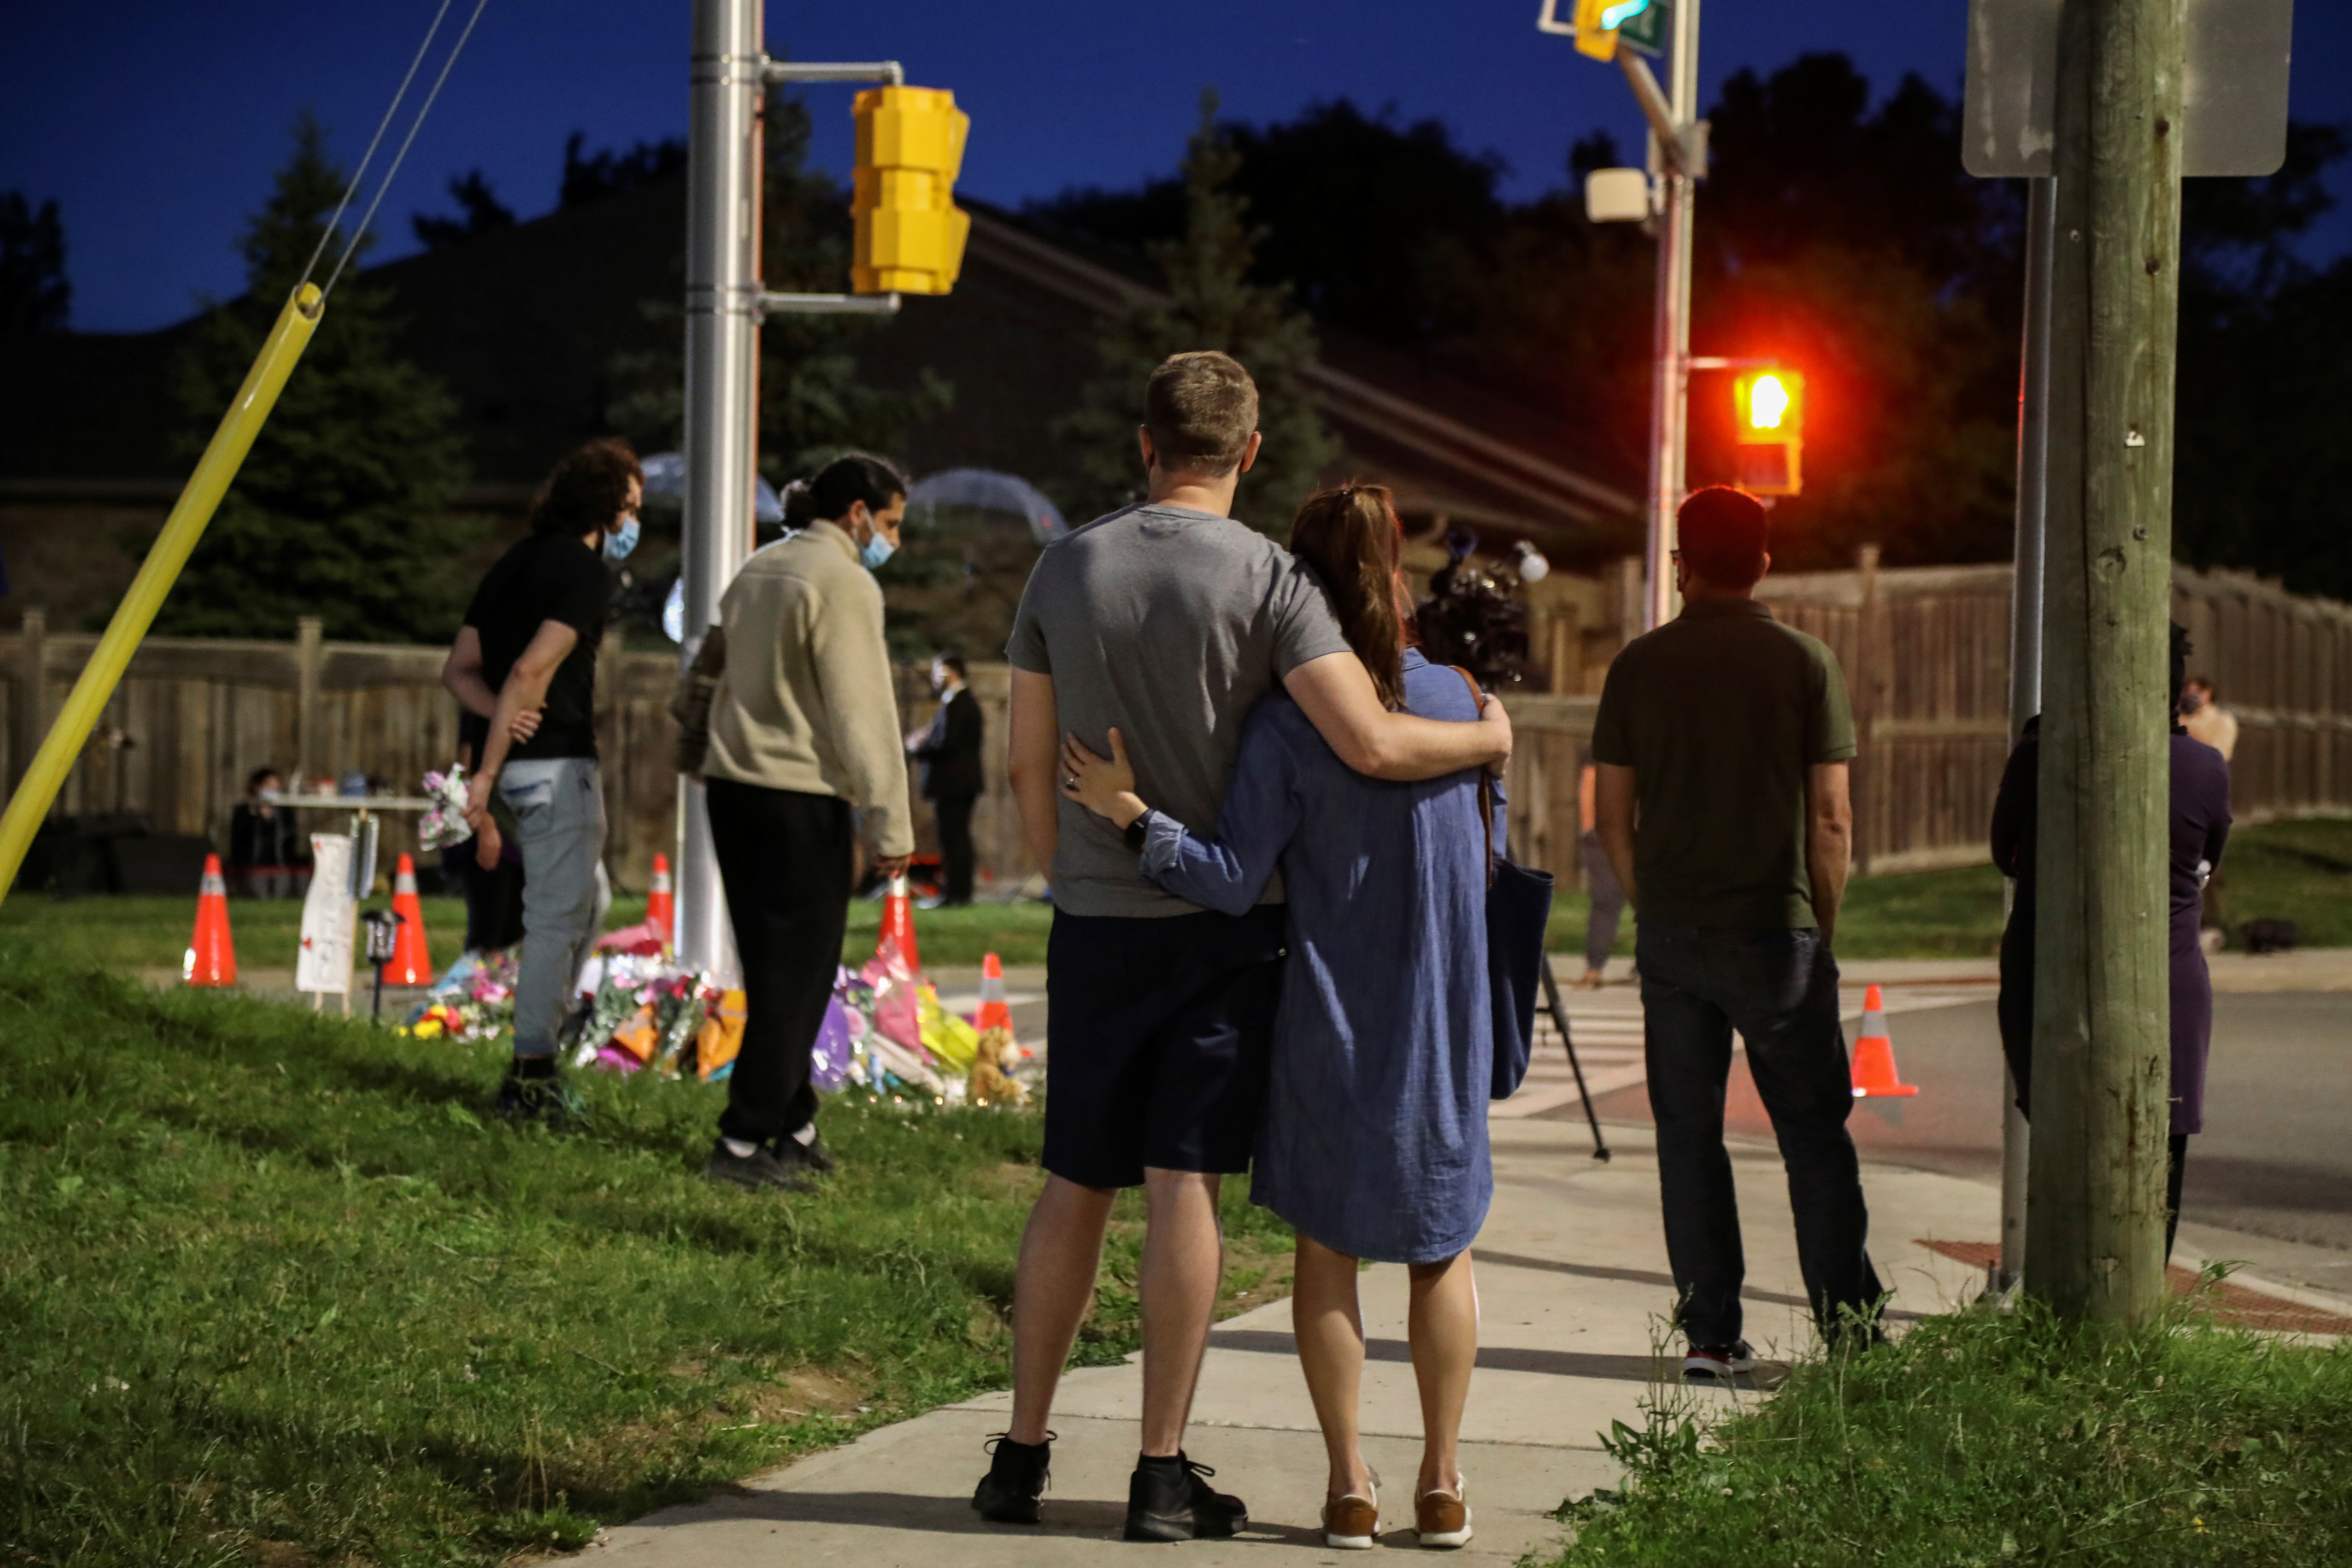 People and members of the media are seen at a makeshift memorial at the fatal crime scene where a man driving a pickup truck jumped the curb and ran over a Muslim family in what police say was a deliberately targeted anti-Islamic hate crime, in London, Ontario, Canada June 7, 2021. REUTERS/Carlos Osorio